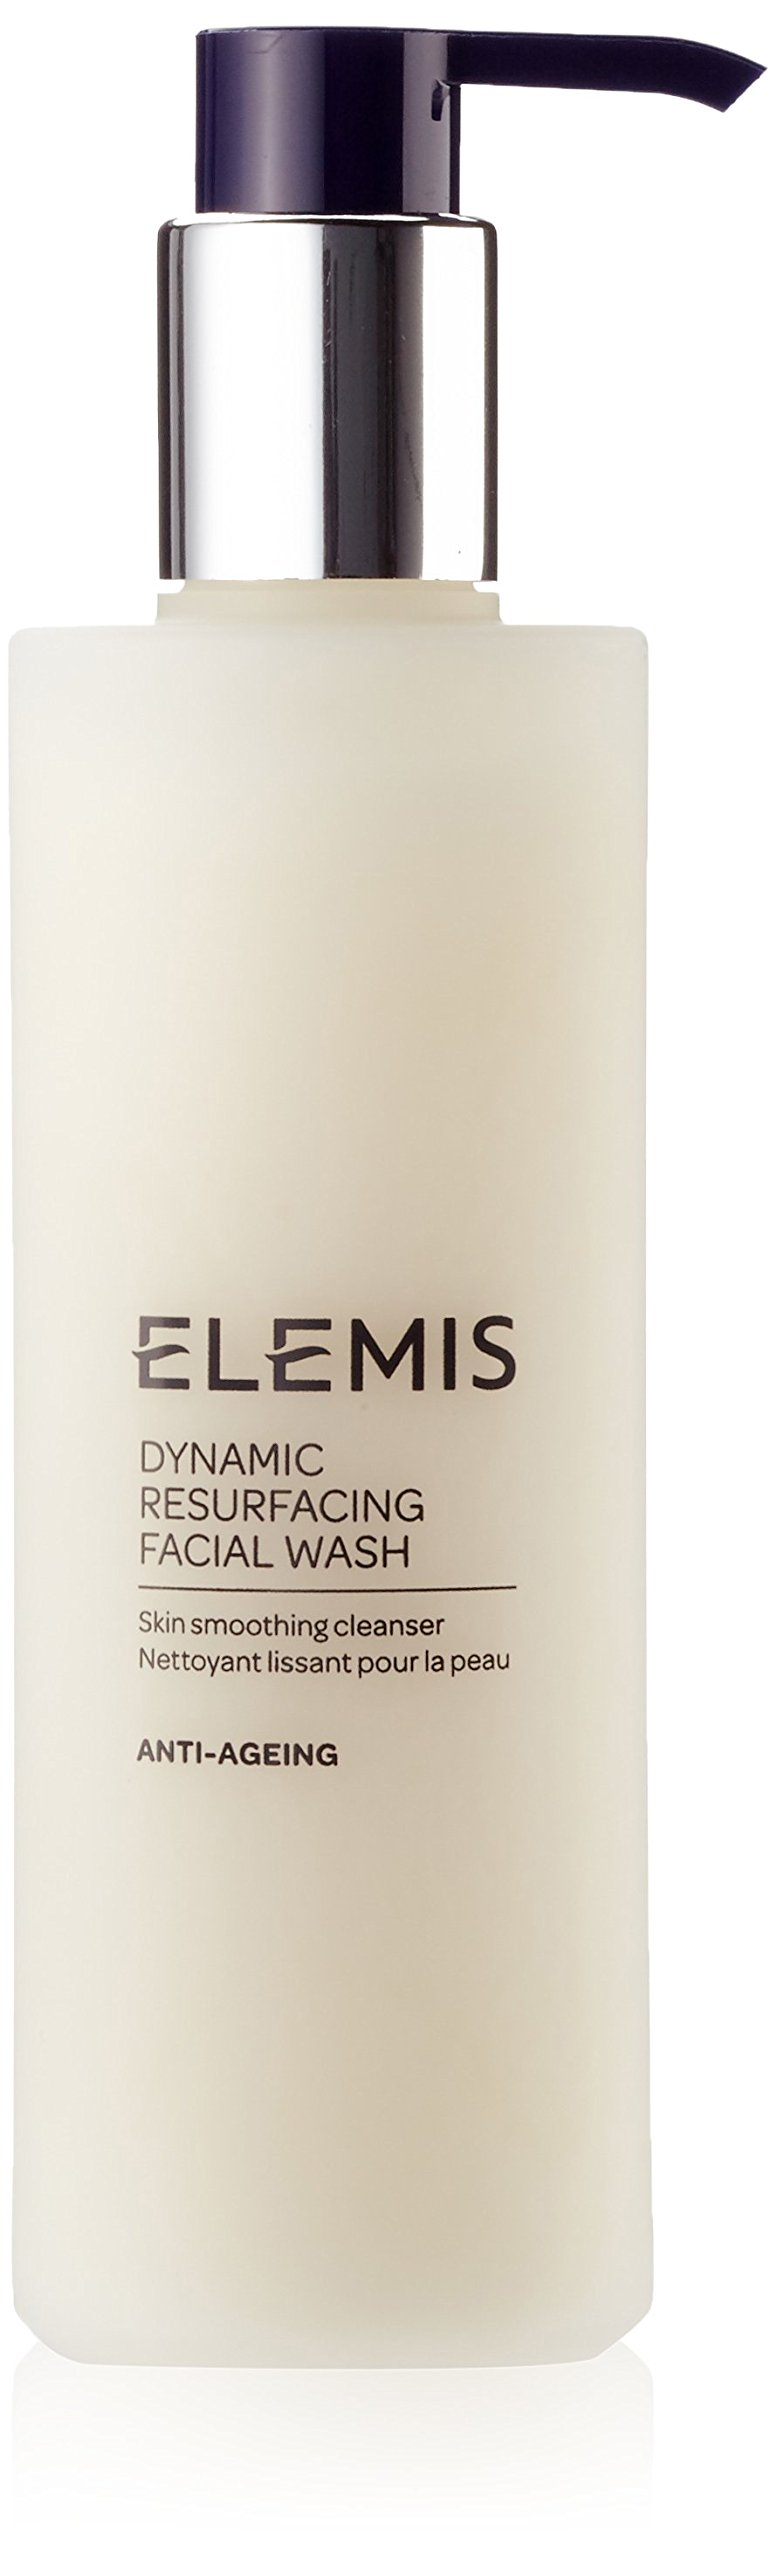 ELEMIS Dynamic Resurfacing Facial Wash, Skin Smoothing Cleanser, 6.7 fl. oz. by ELEMIS